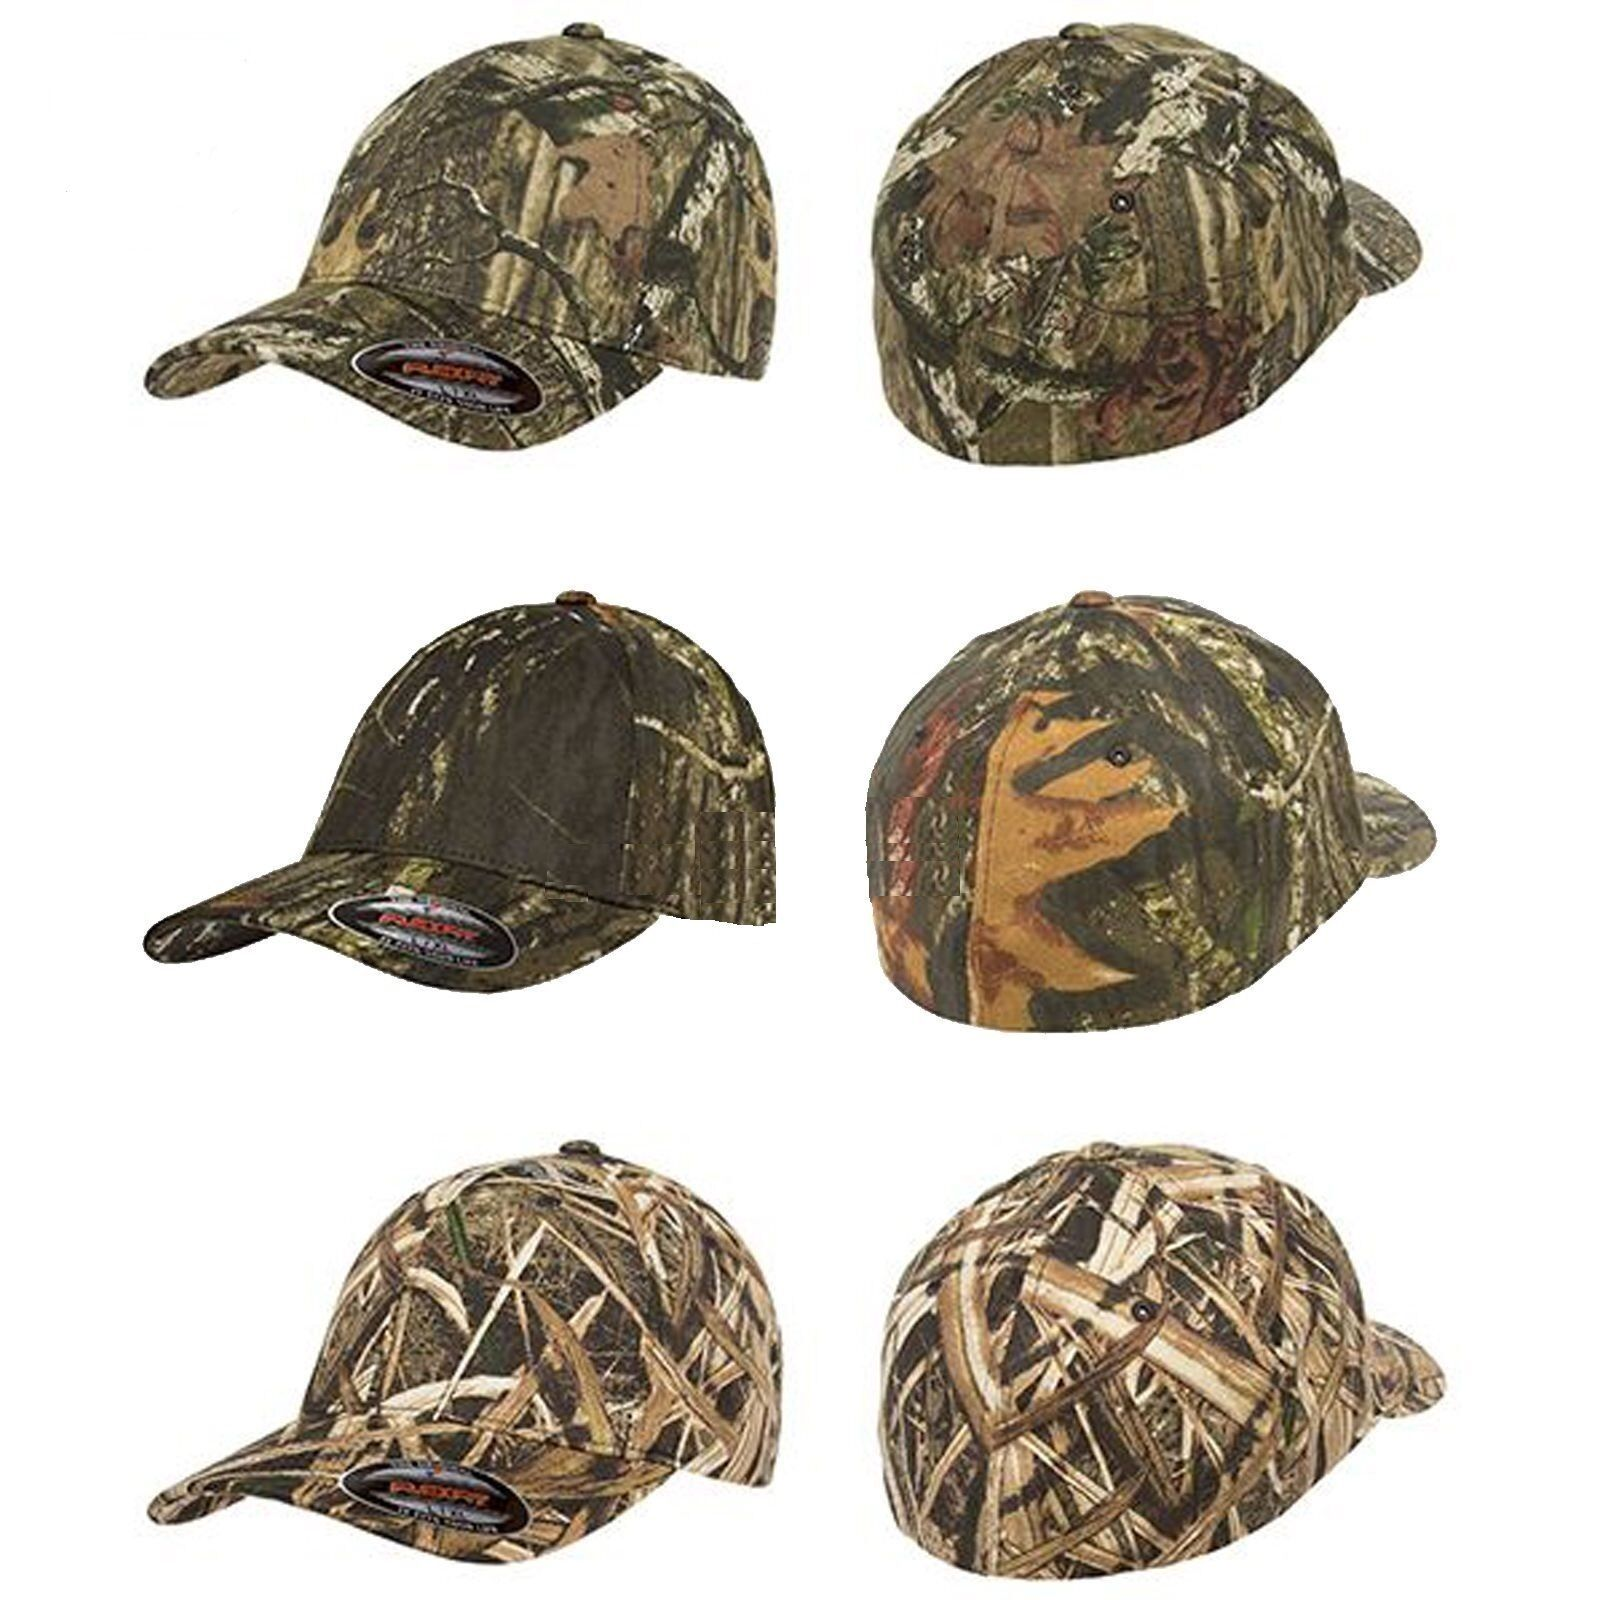 Details about FLEXFIT Mossy Oak Infinity Camo Hats NEW Fitted Camouflage Cap  S M L XL 2XL 6999 d7089f3cb3b